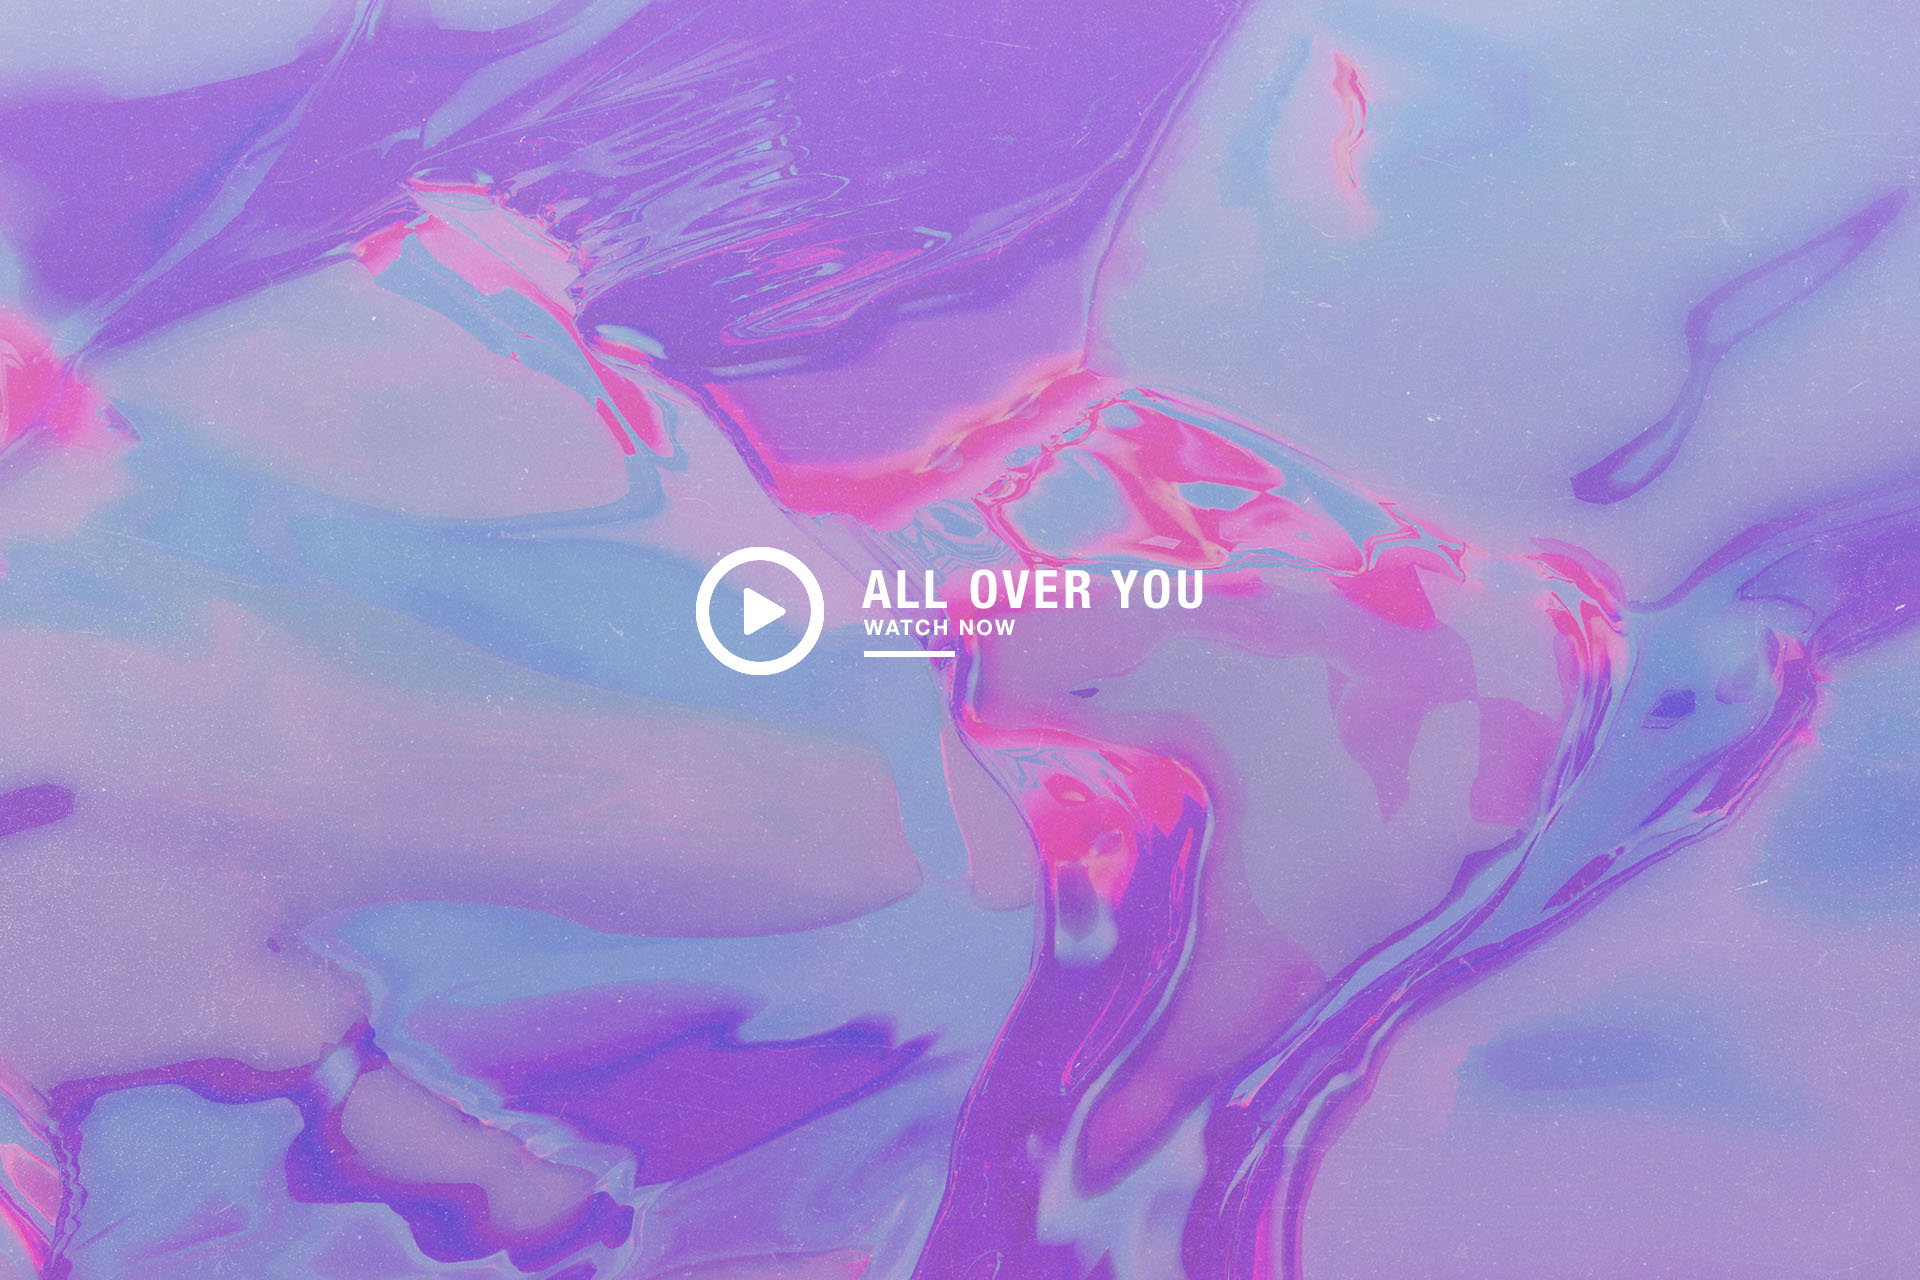 Majid Jordan - All Over You - Official Audio